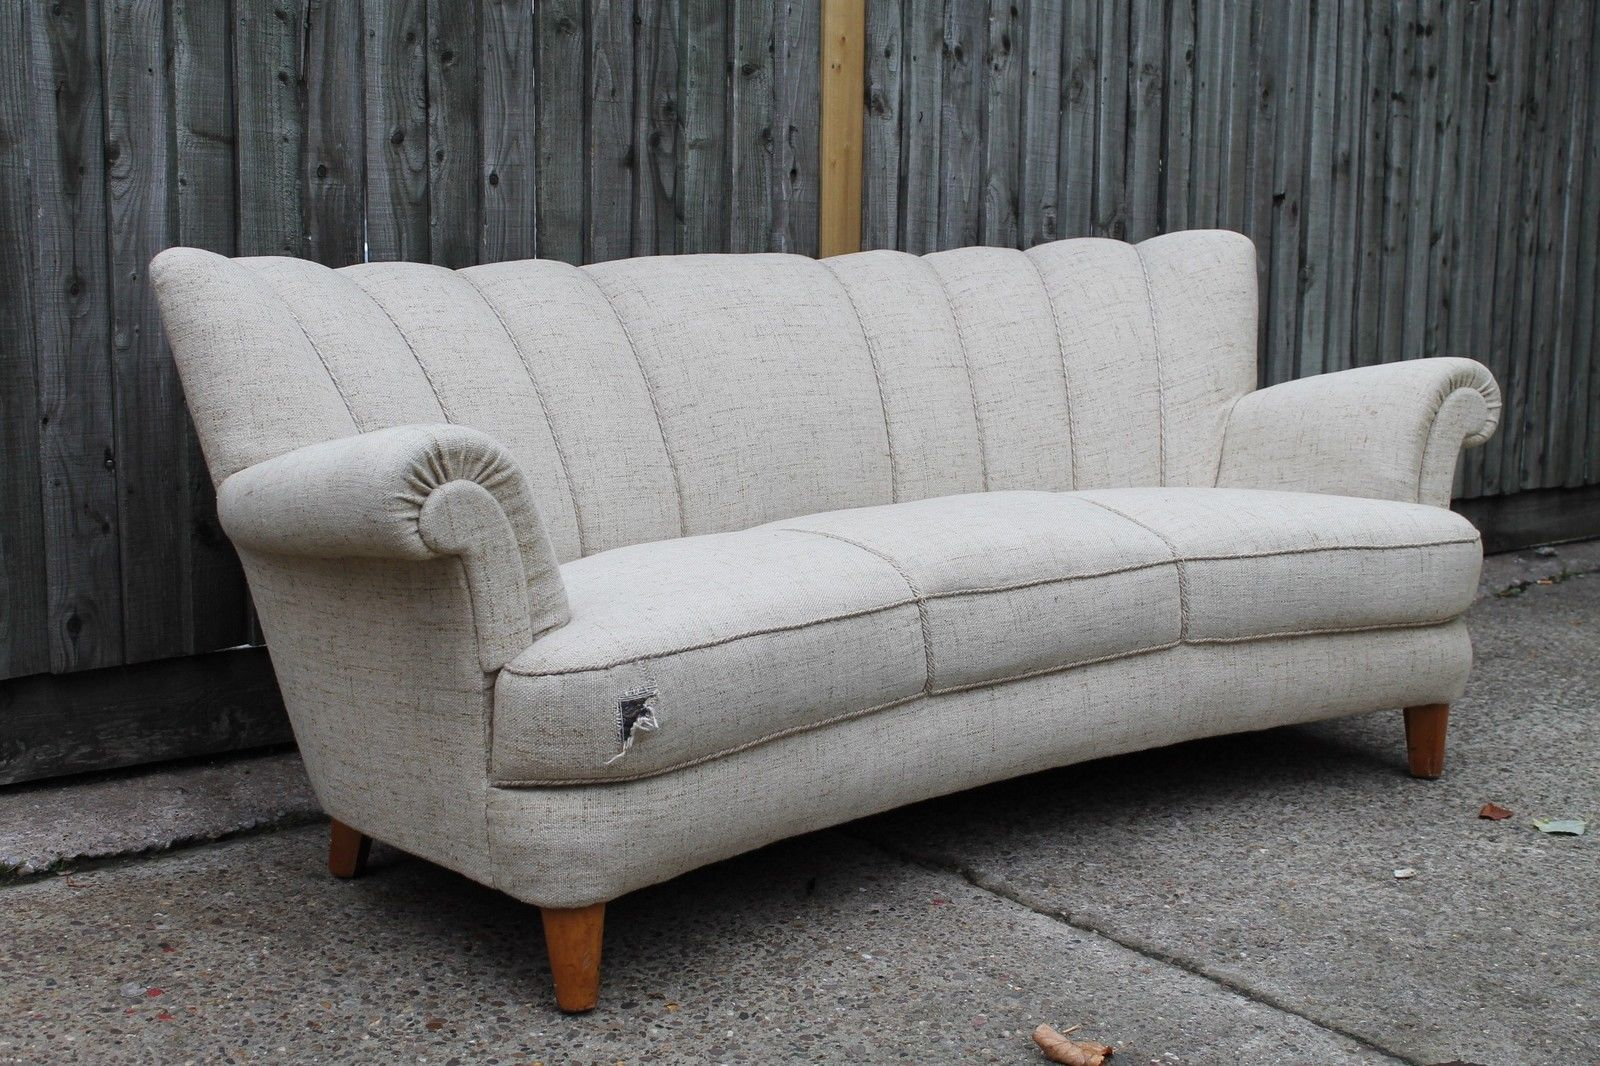 SWEDISH ART DECO SHELL BACK SOFA VINTAGE RETRO DANISH PO SUITE CHAIRS CLOUD BACK in Antiques, Antique Furniture, Sofas/ Chaises, 20th Century | eBay